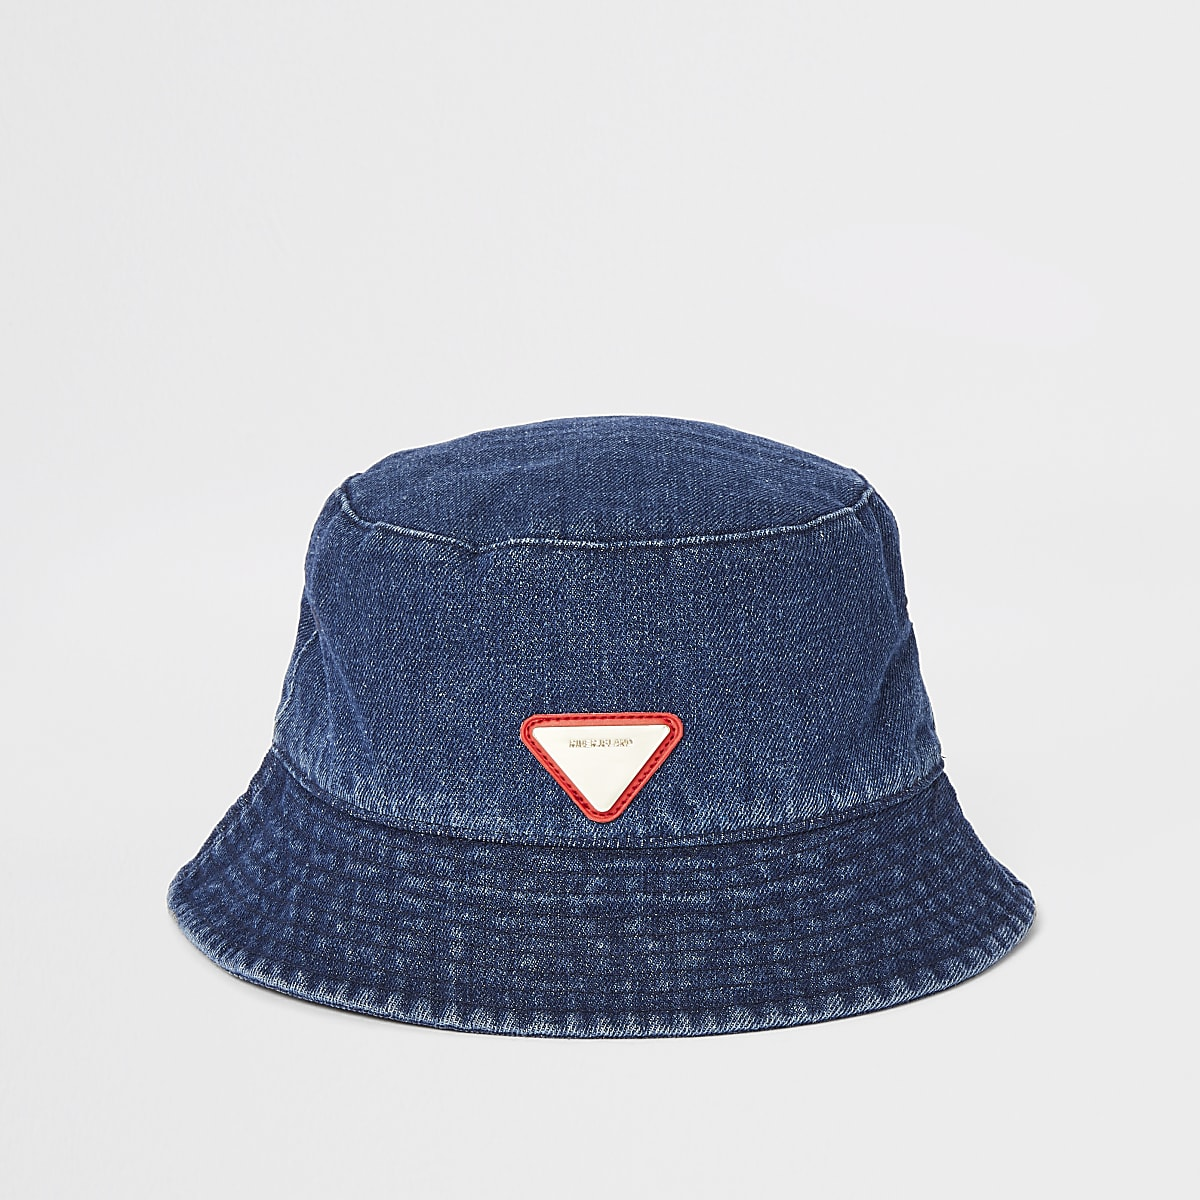 54737f3065 Blue denim bucket hat - Hats   Caps - Accessories - men